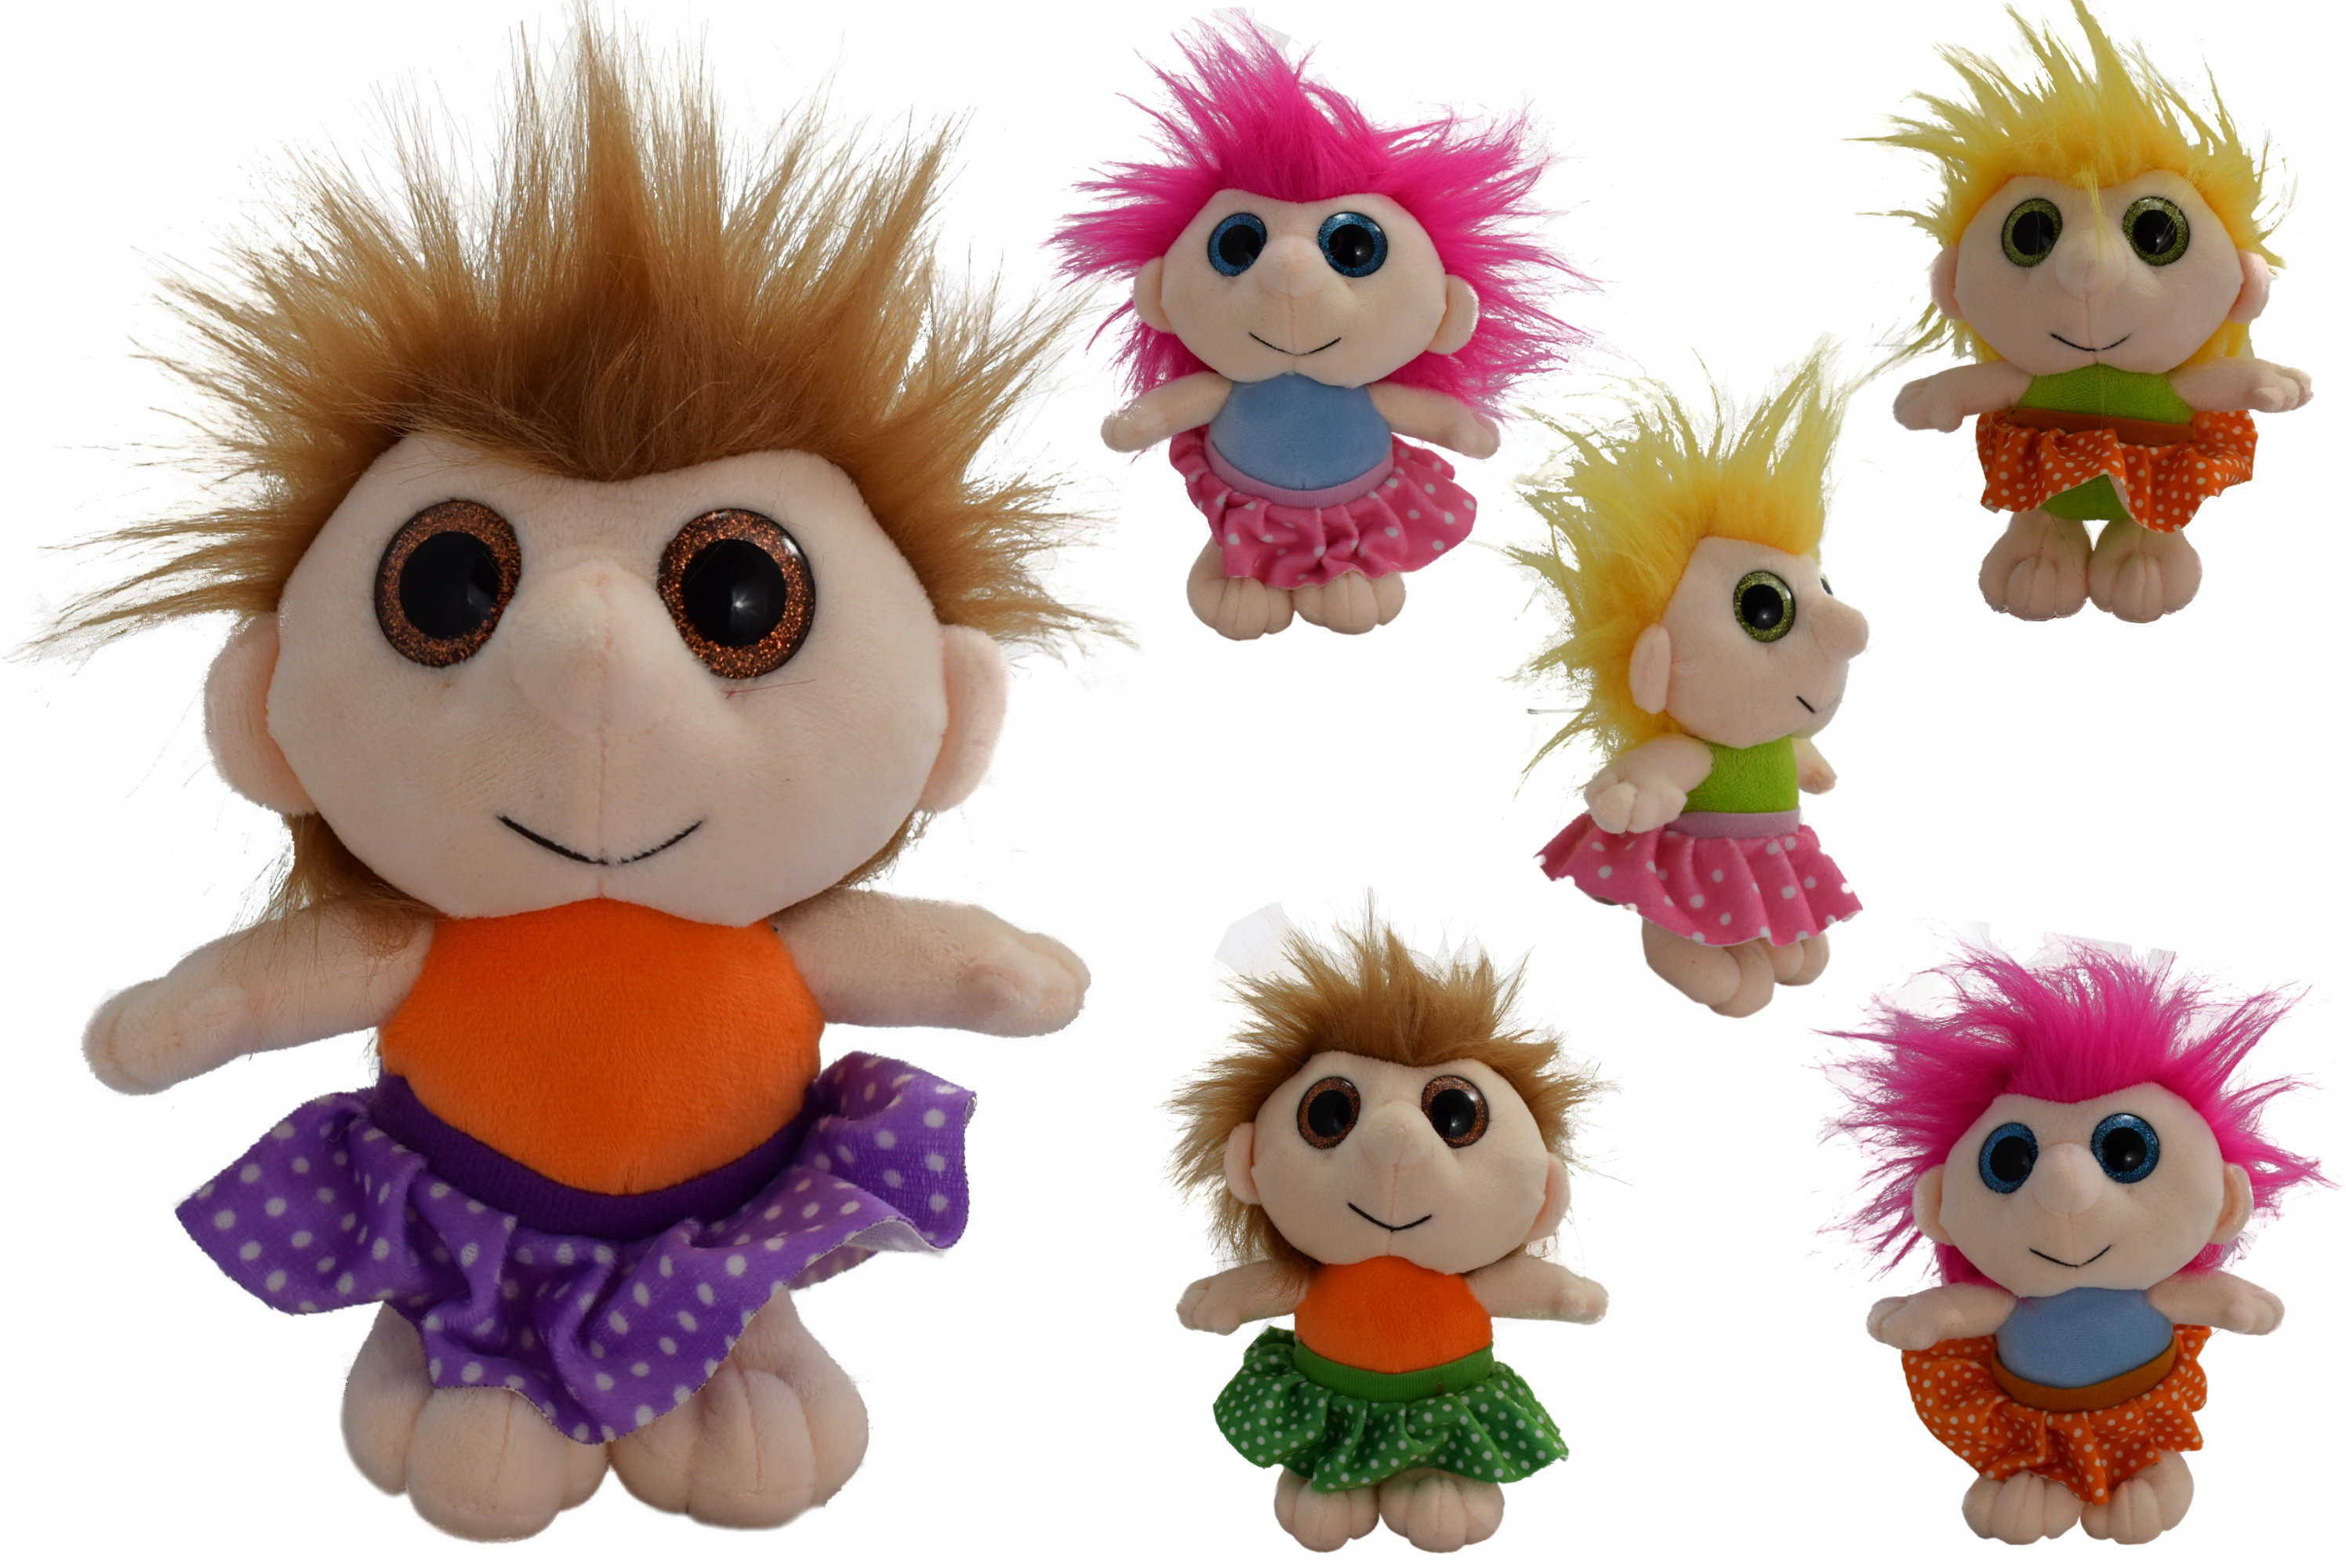 15cm Plush Girl Lucky Ones - 6 Assorted Colours